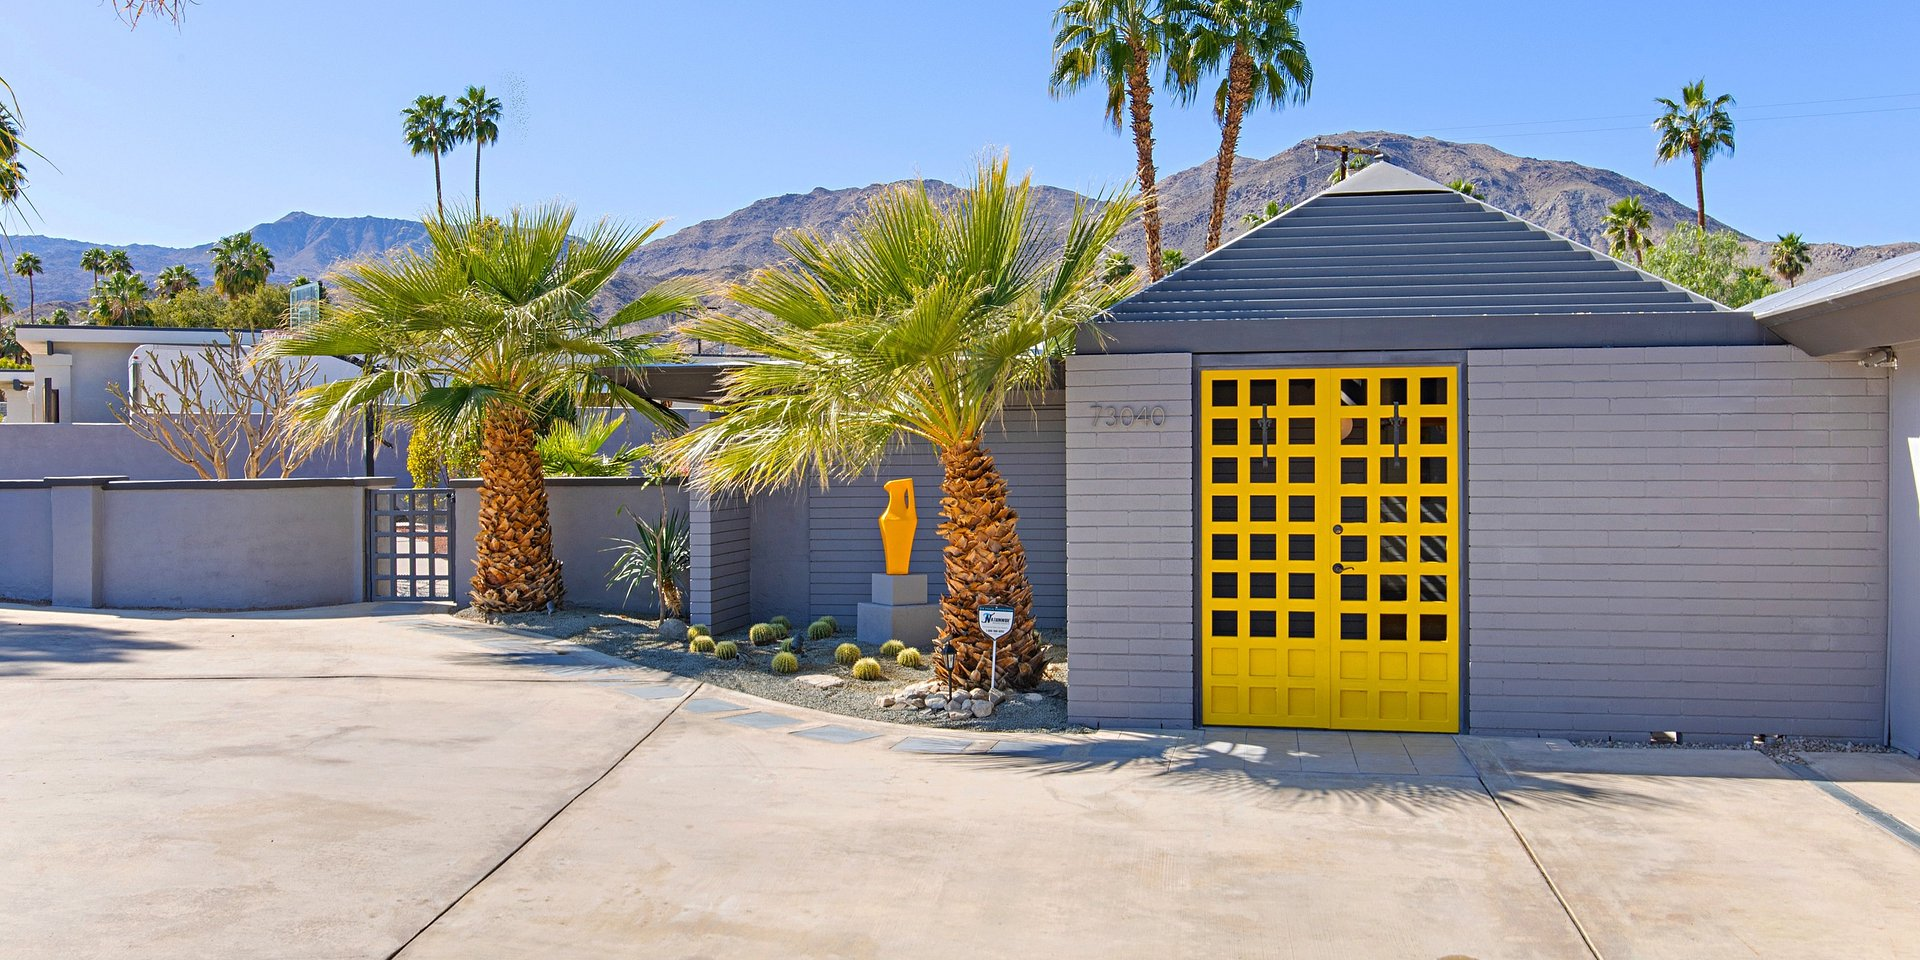 Coldwell Banker Realty Lists a Palm Desert Property for $1.14 Million